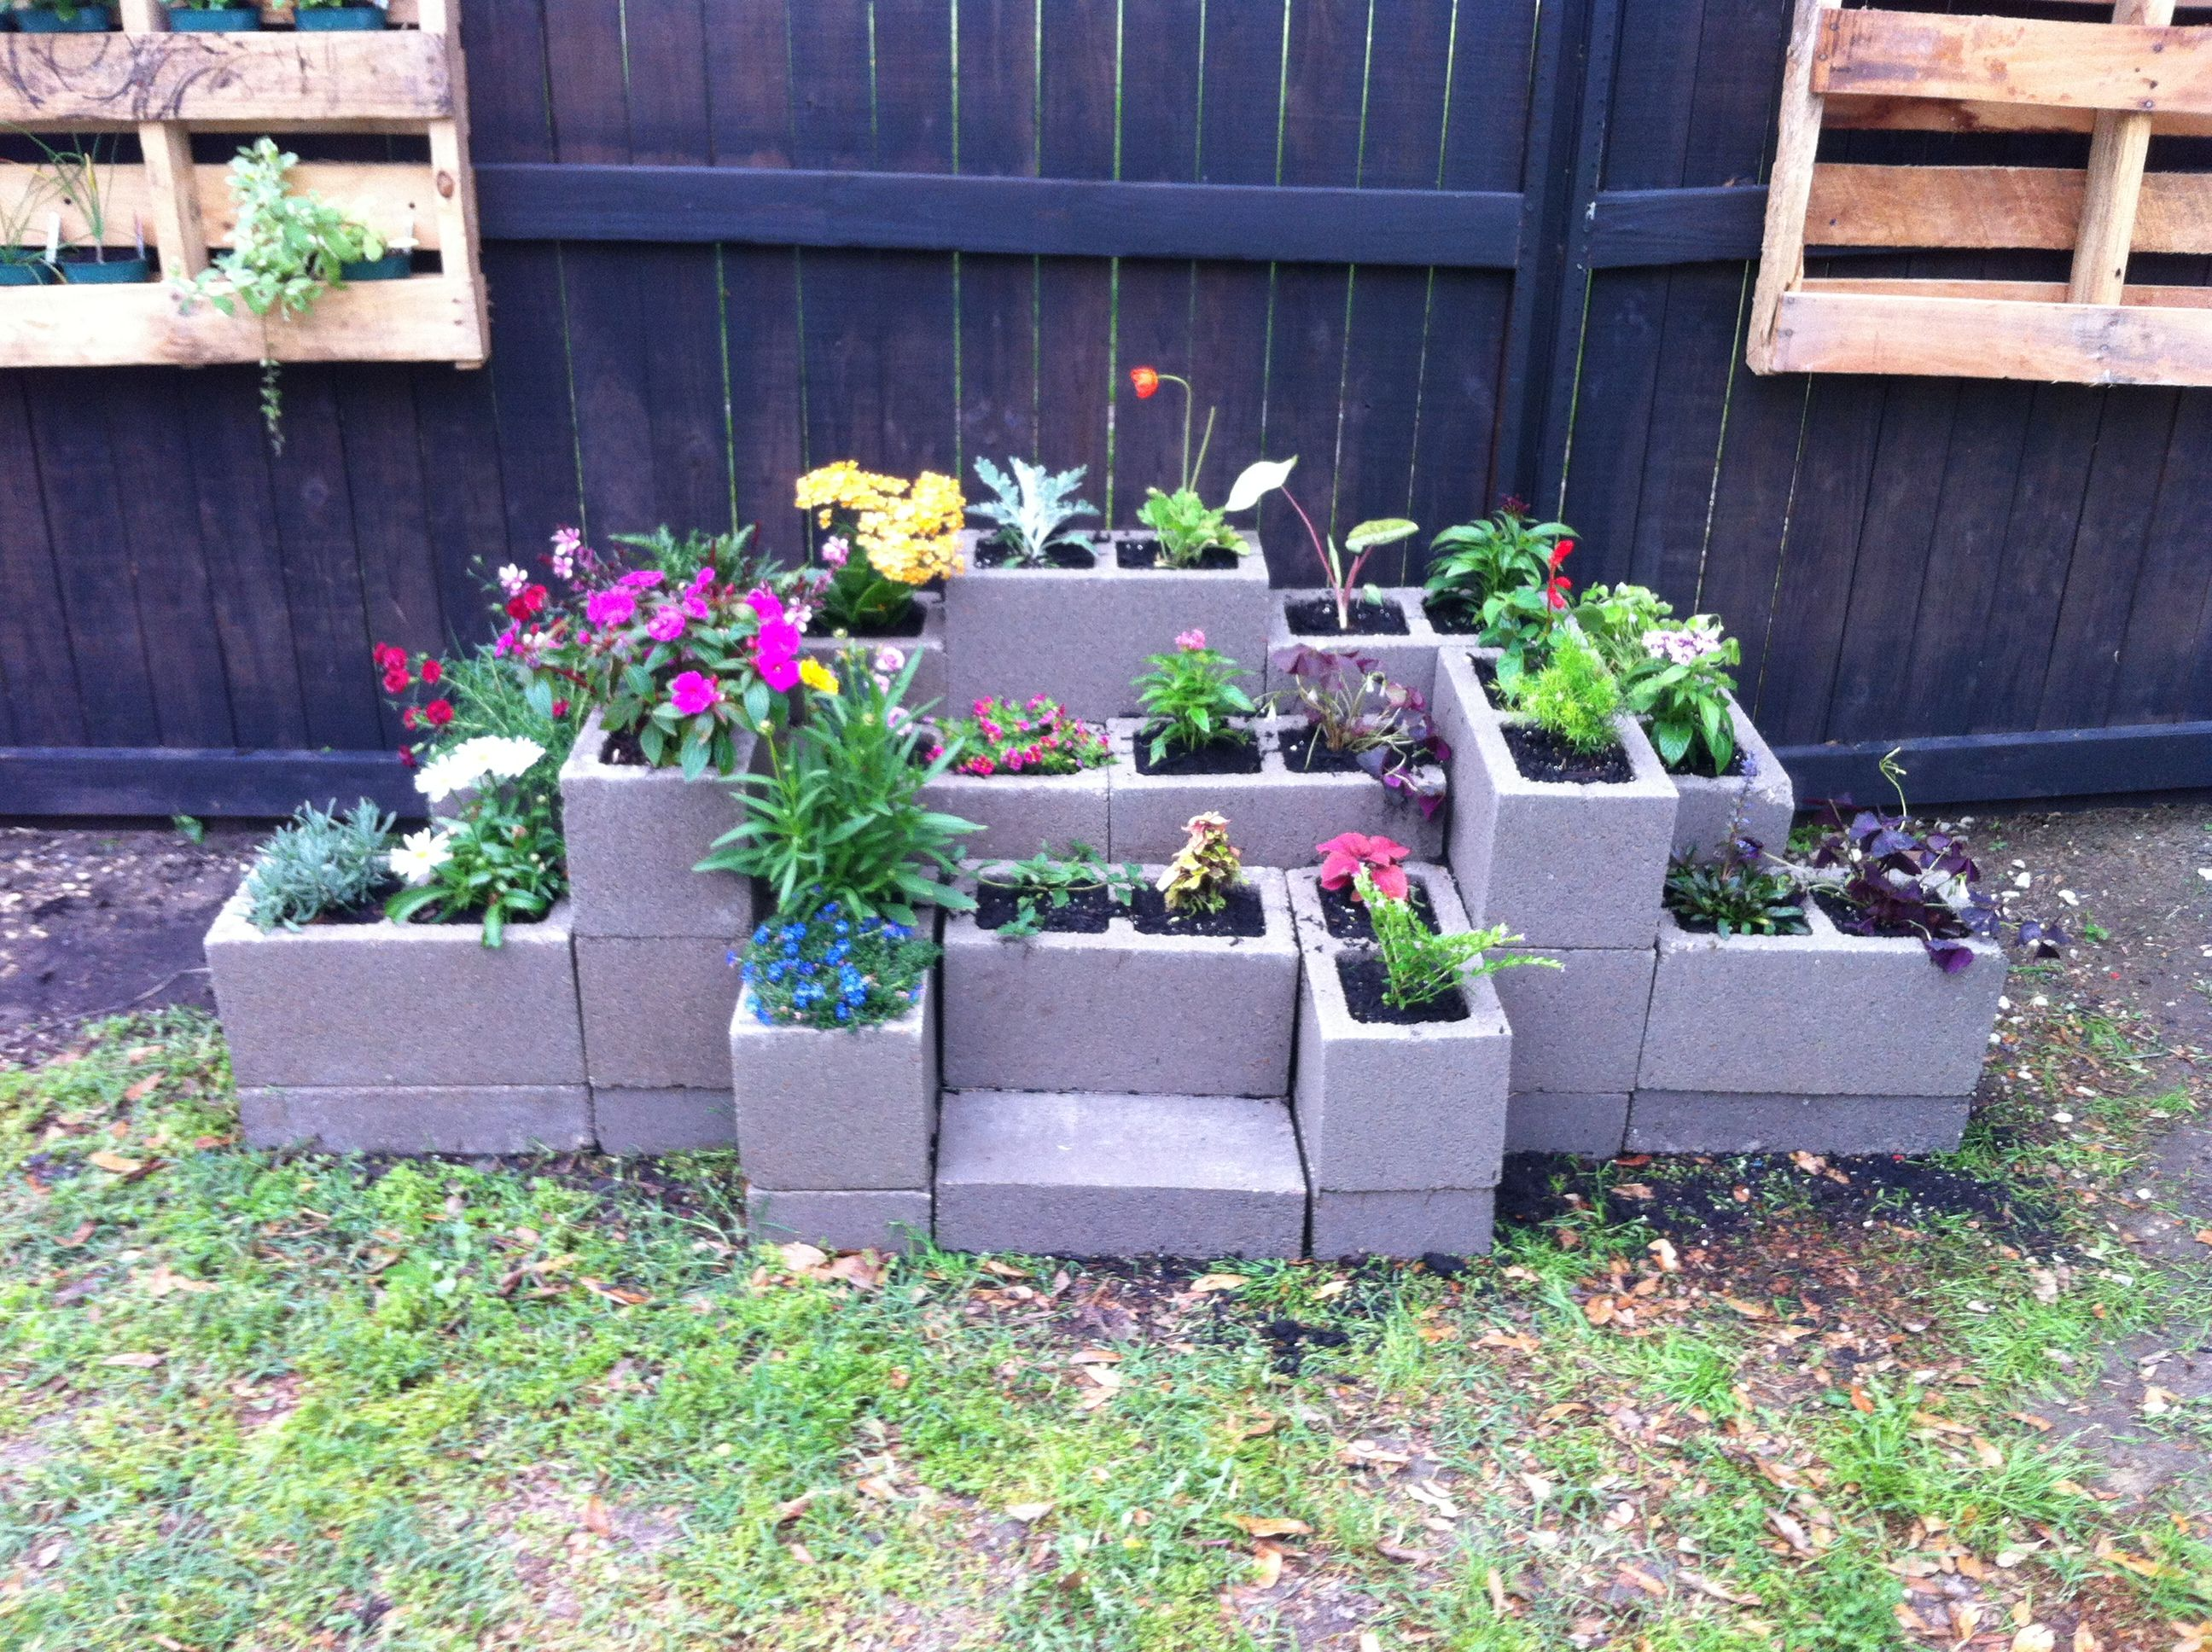 22 DIY Cinder Block Planter Ideas to Update Your Garden ... |Cinder Block Flower Bed Plans